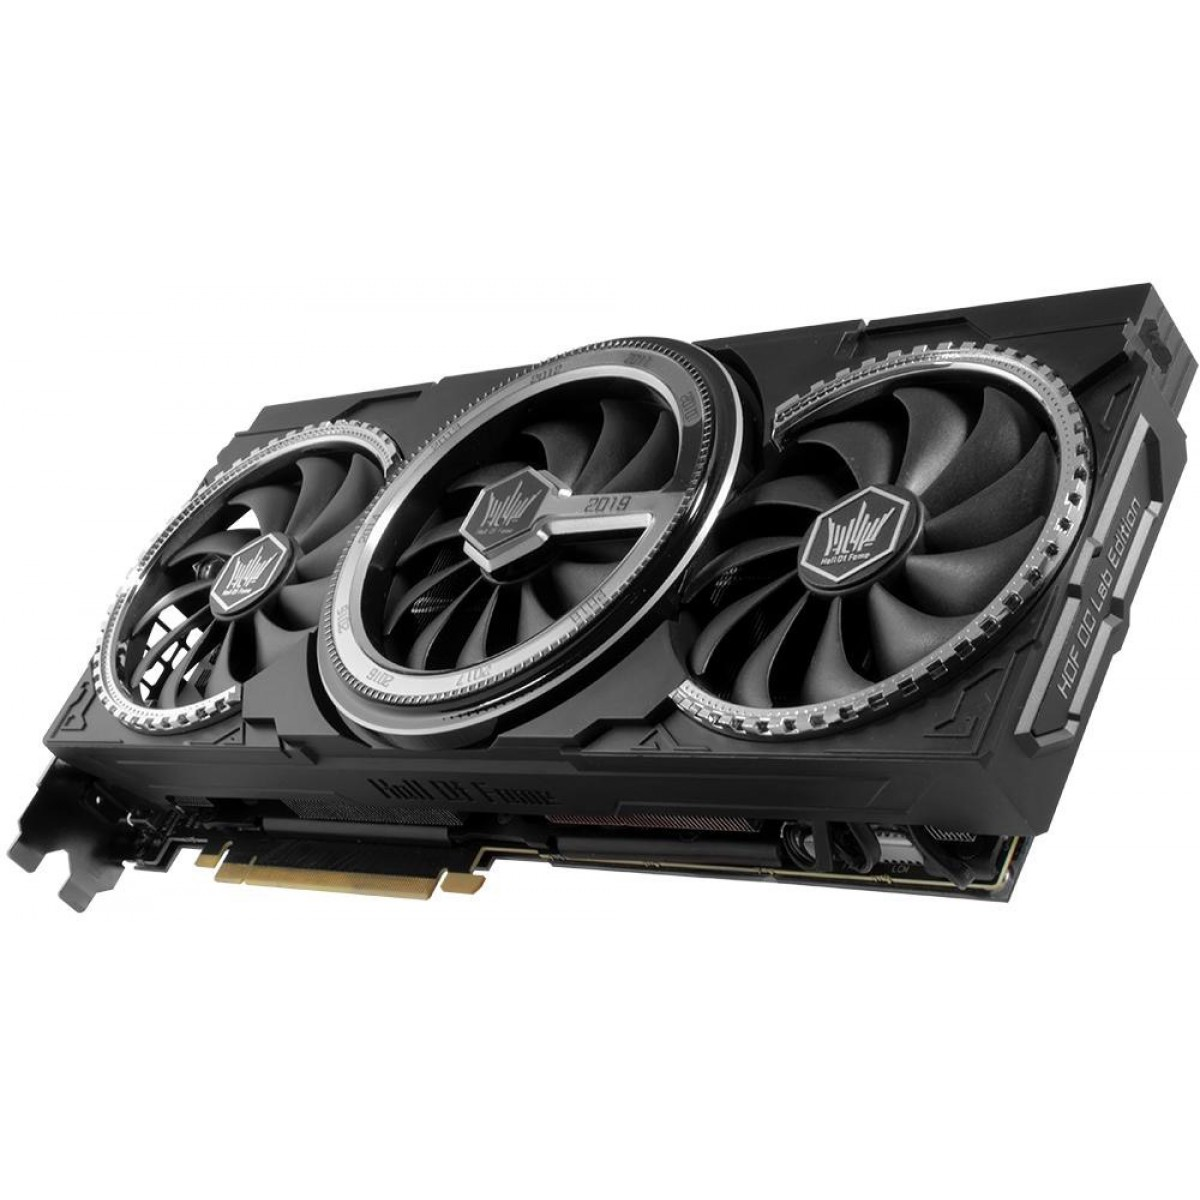 Placa de Vídeo Galax GeForce RTX 2070 Super HOF Black Edition, 8GB GDDR6, 256Bit, 27ISL6UC53HT